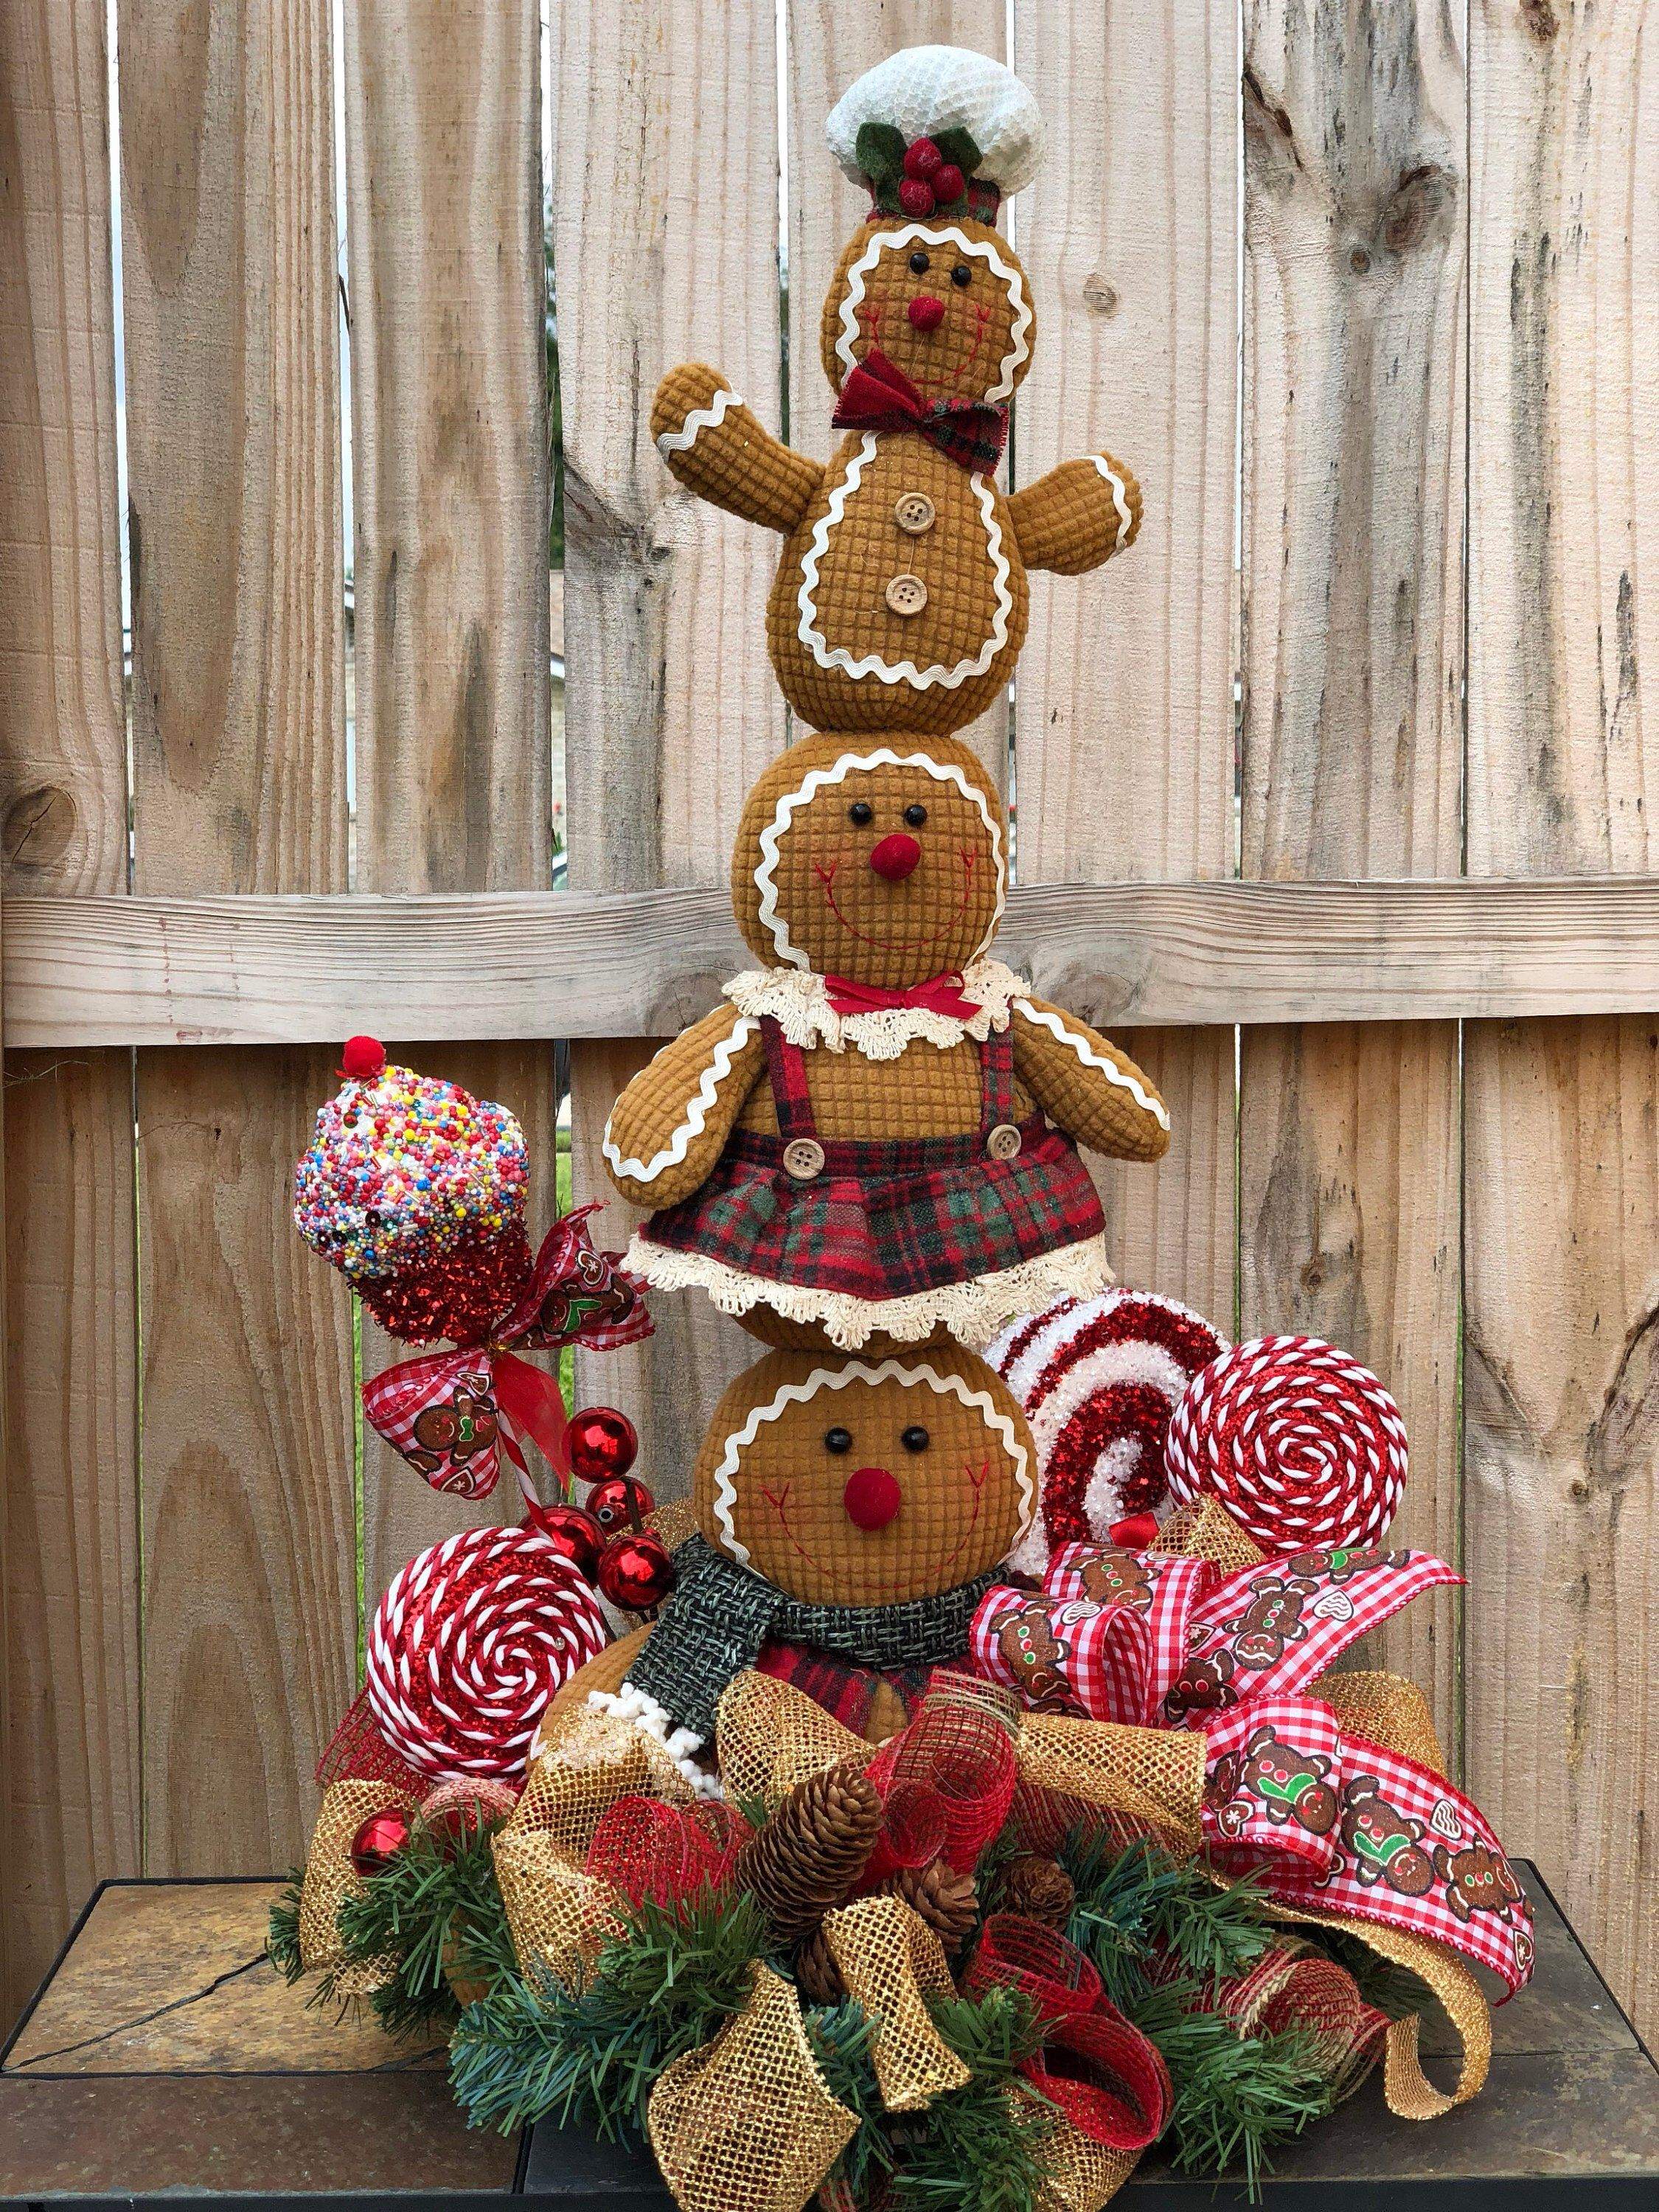 Excited To Share This Item From My Etsy Shop Christmas Centerpiece Gingerbread C Gingerbread Christmas Decor Rustic Christmas Wreath Gingerbread Decorations